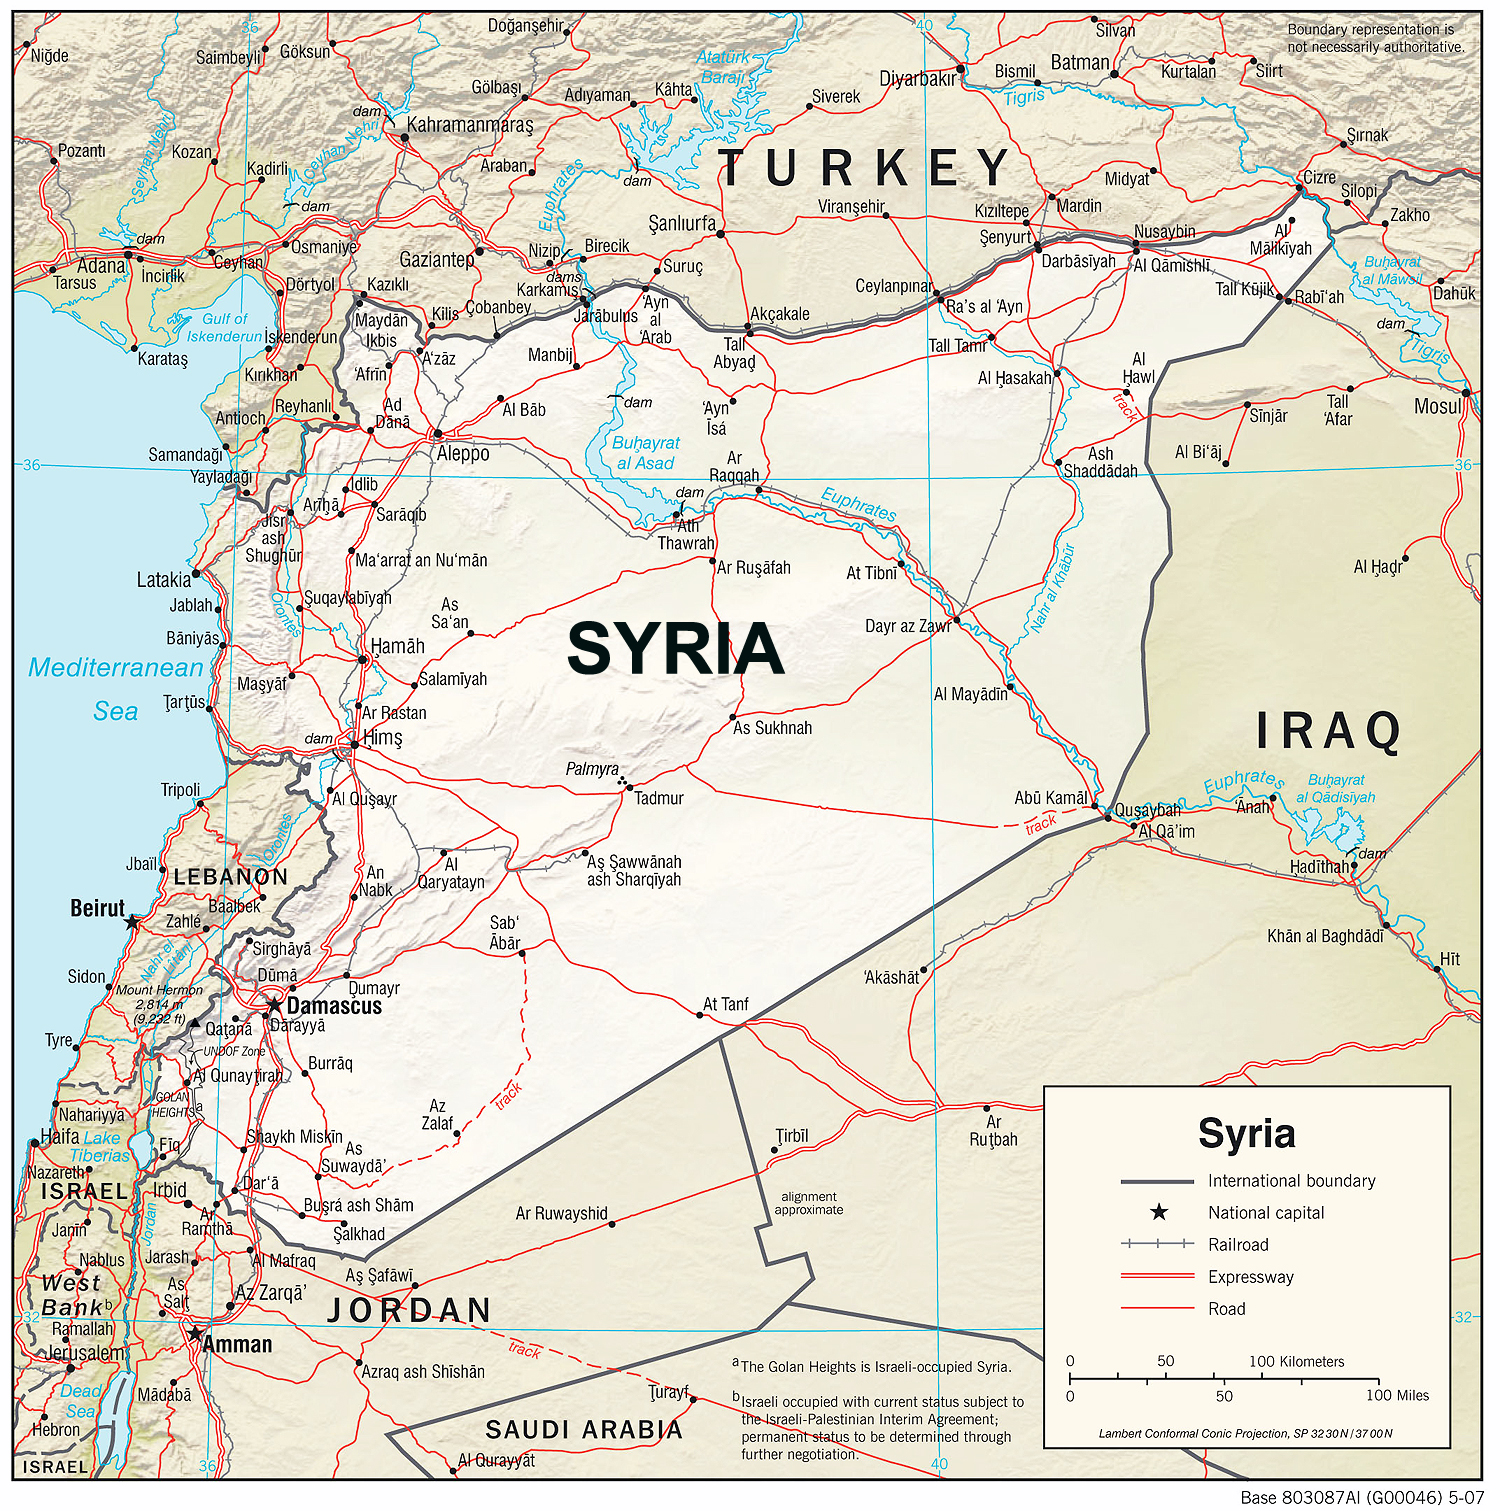 How Big Is Russia's Win in Syria?